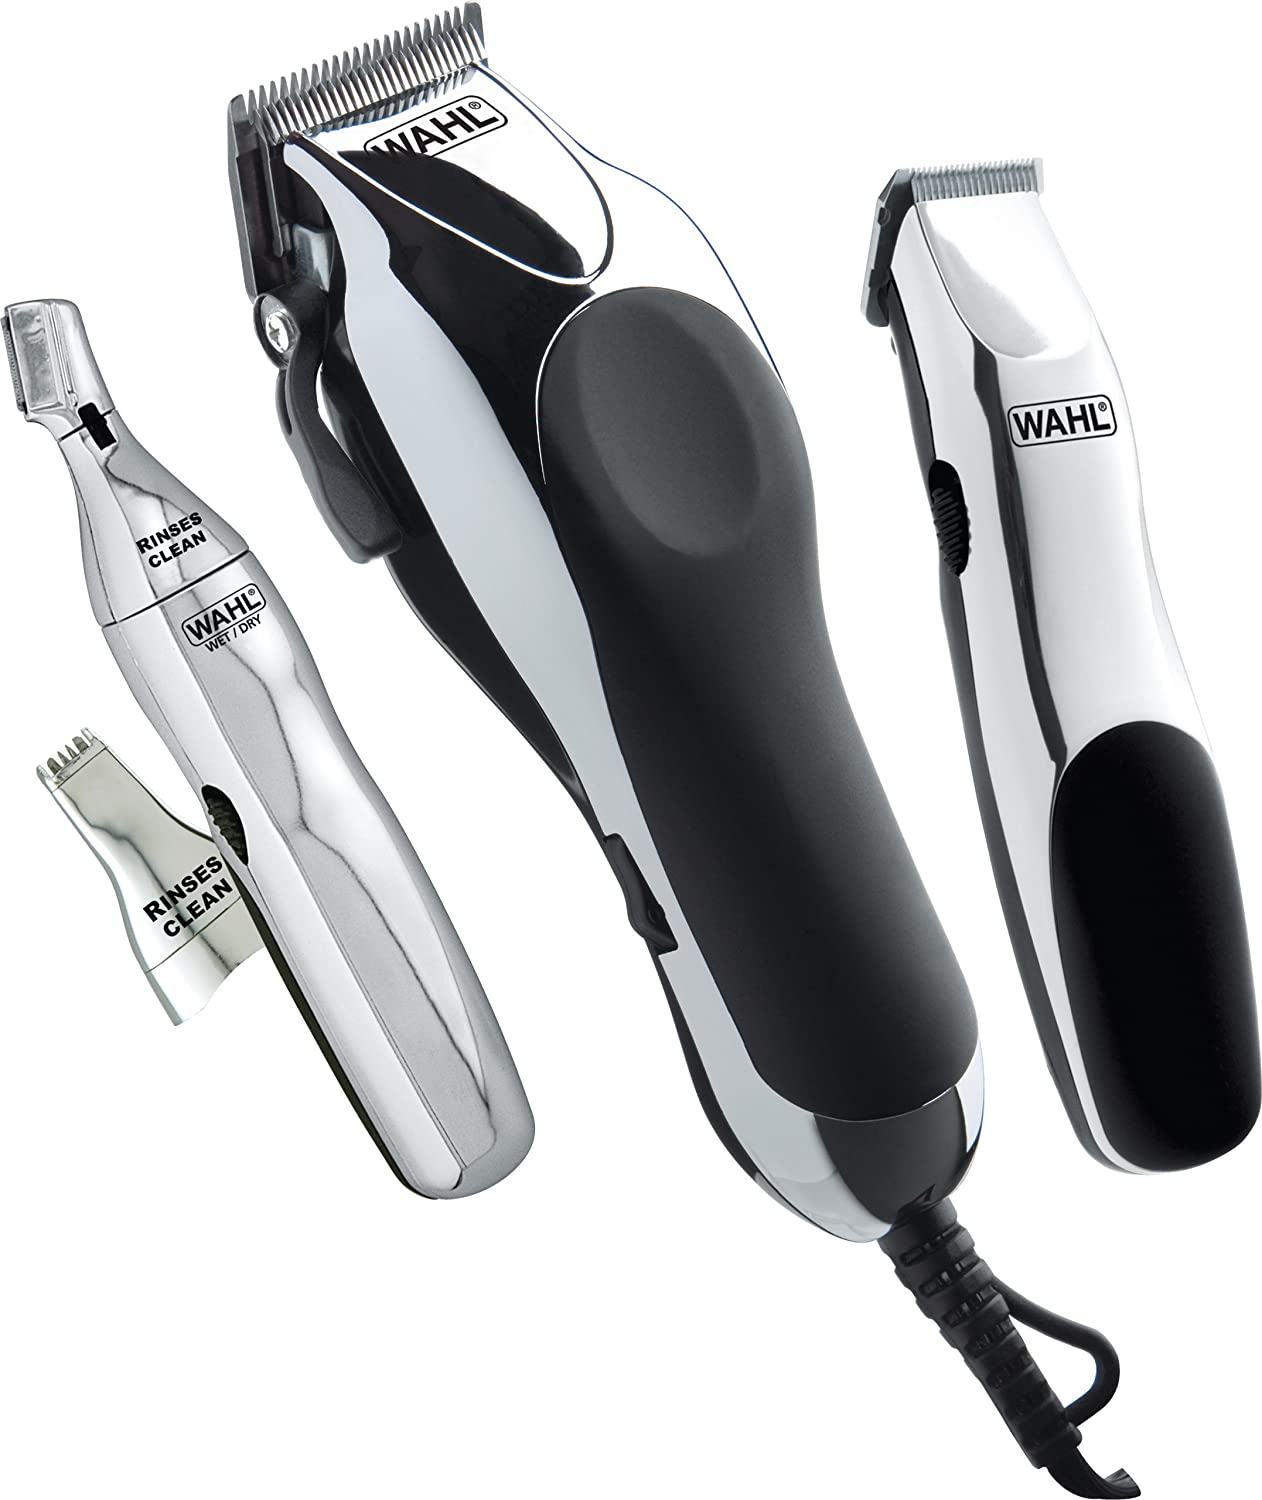 Wahl Professional Hair Cutting Kit 30 Piece Trimmer ...